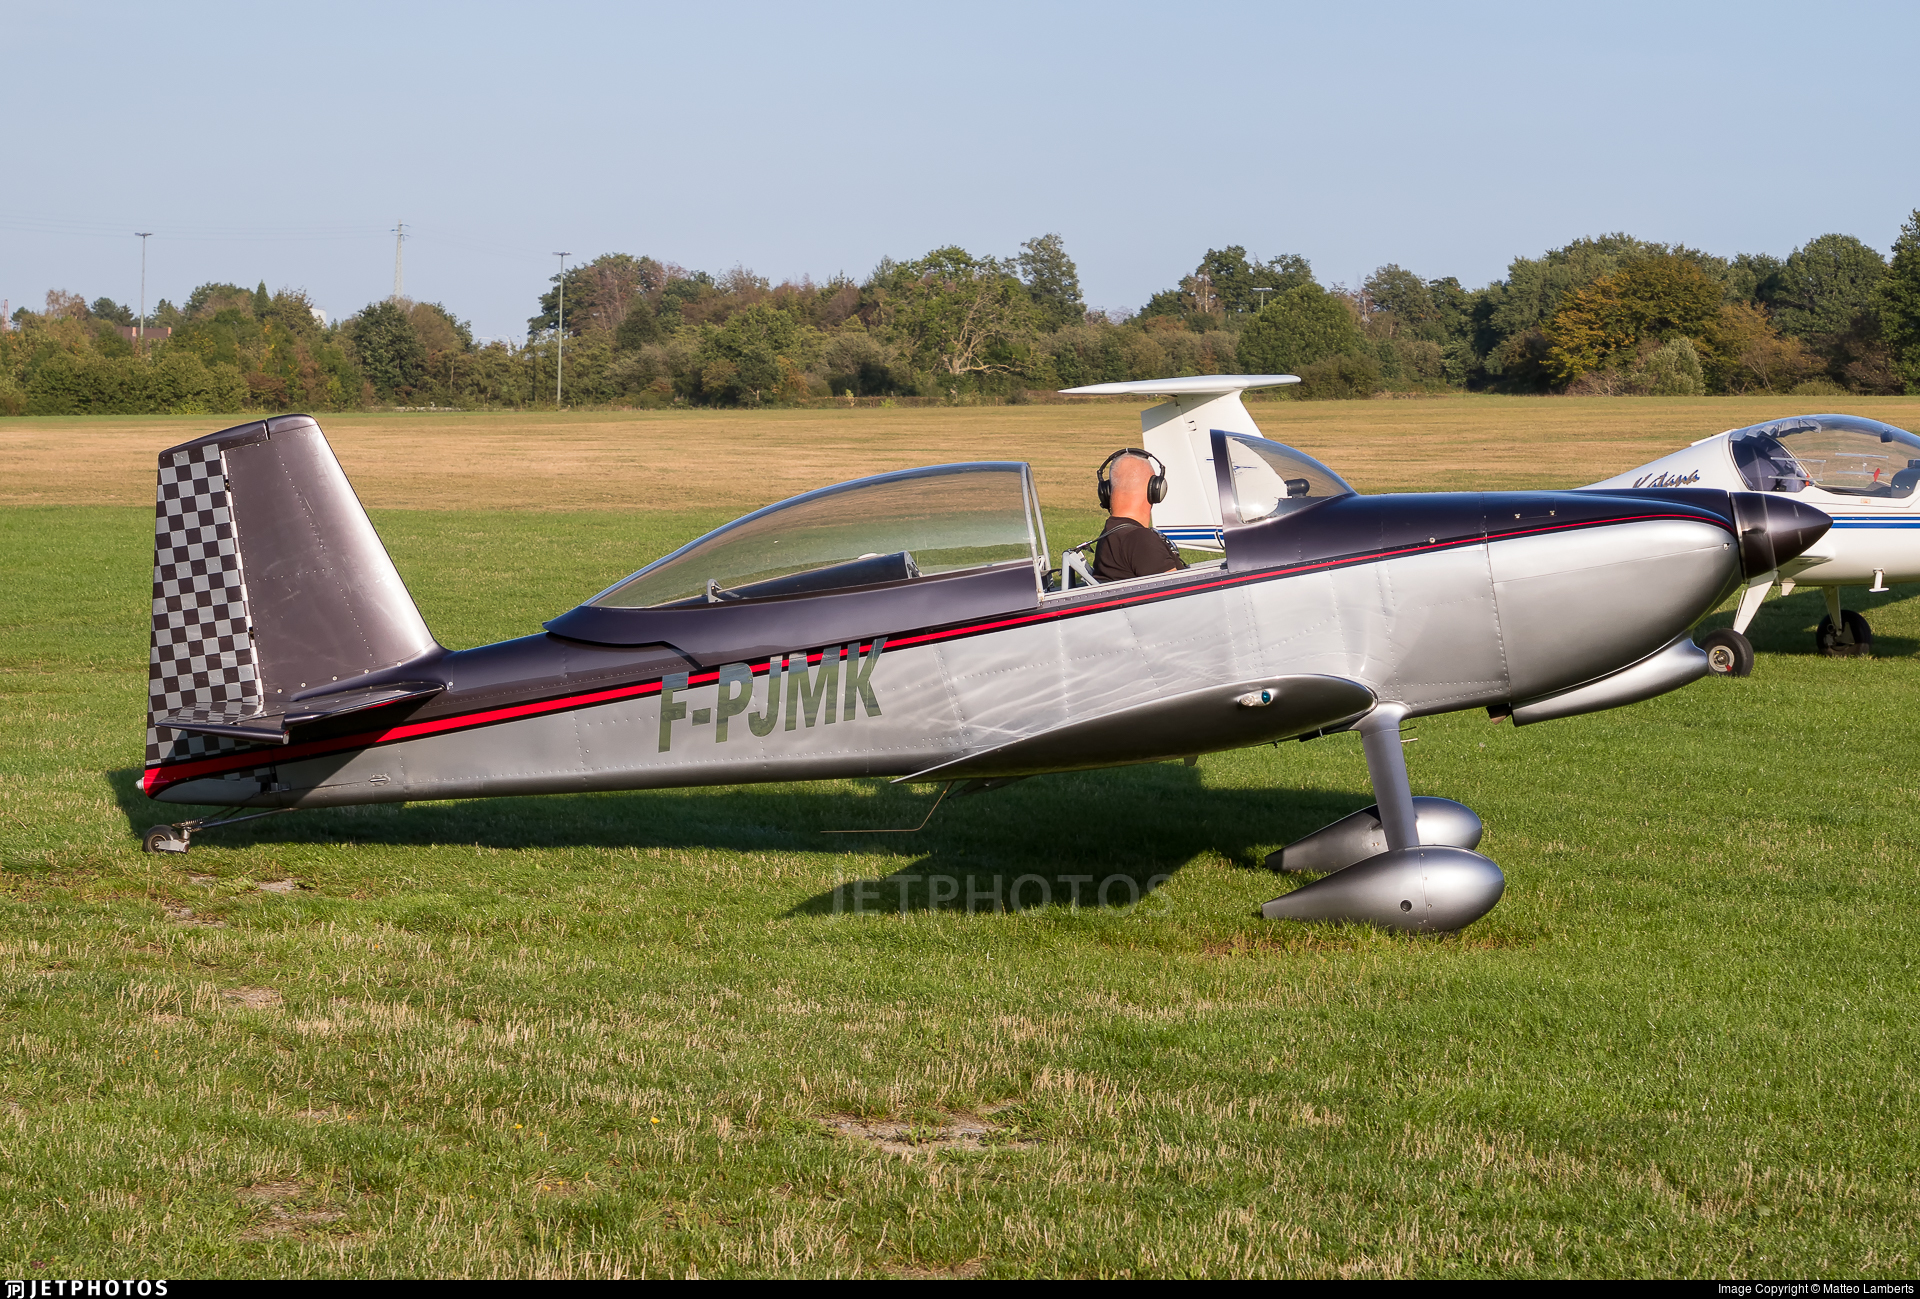 F-PJMK - Vans RV-8 - Private